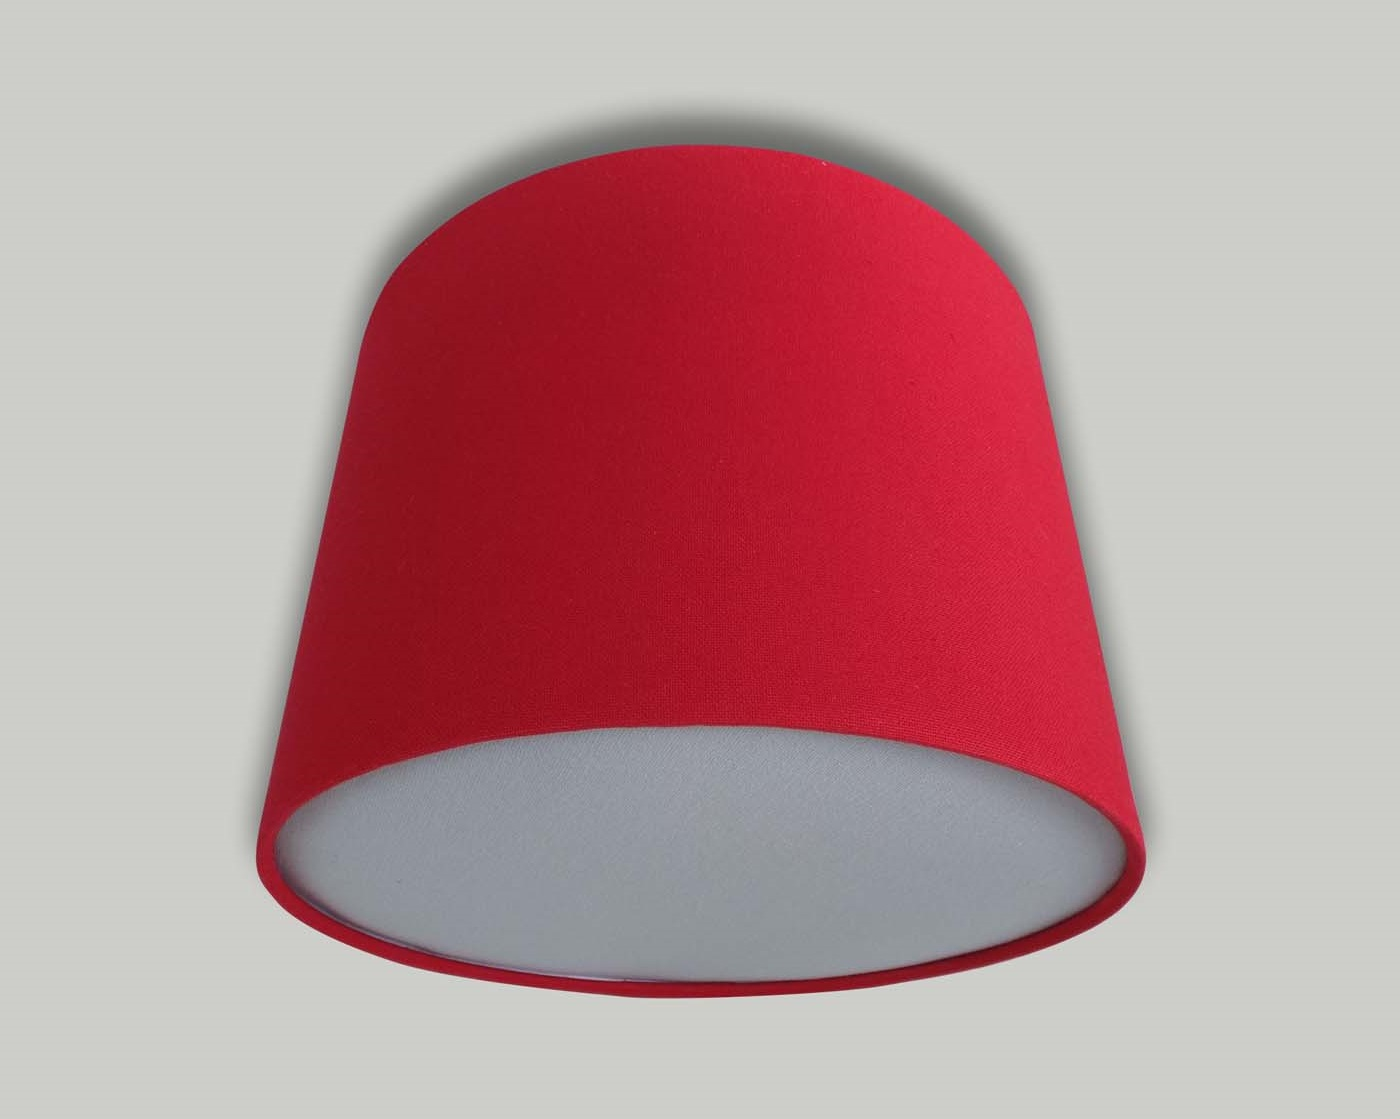 Red ceiling drum lampshade light grey diffuser the lampshade barn red ceiling drum lampshade light grey diffuser mozeypictures Image collections